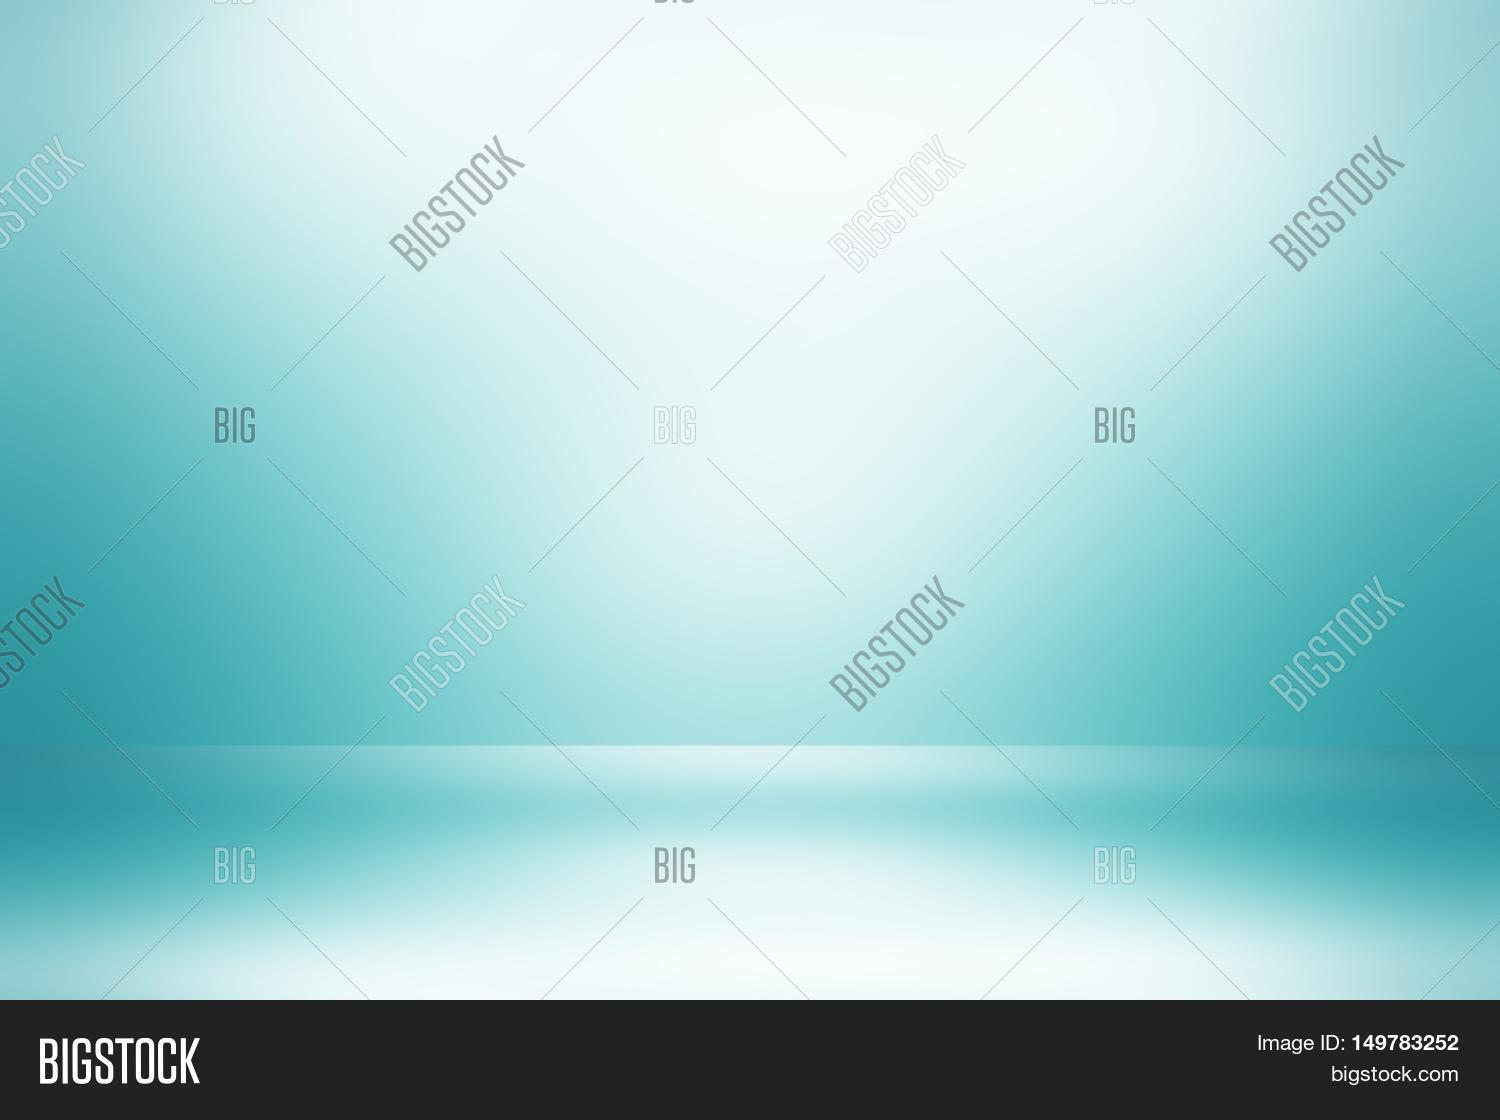 Blue Gradient Abstract Image Photo Free Trial Bigstock